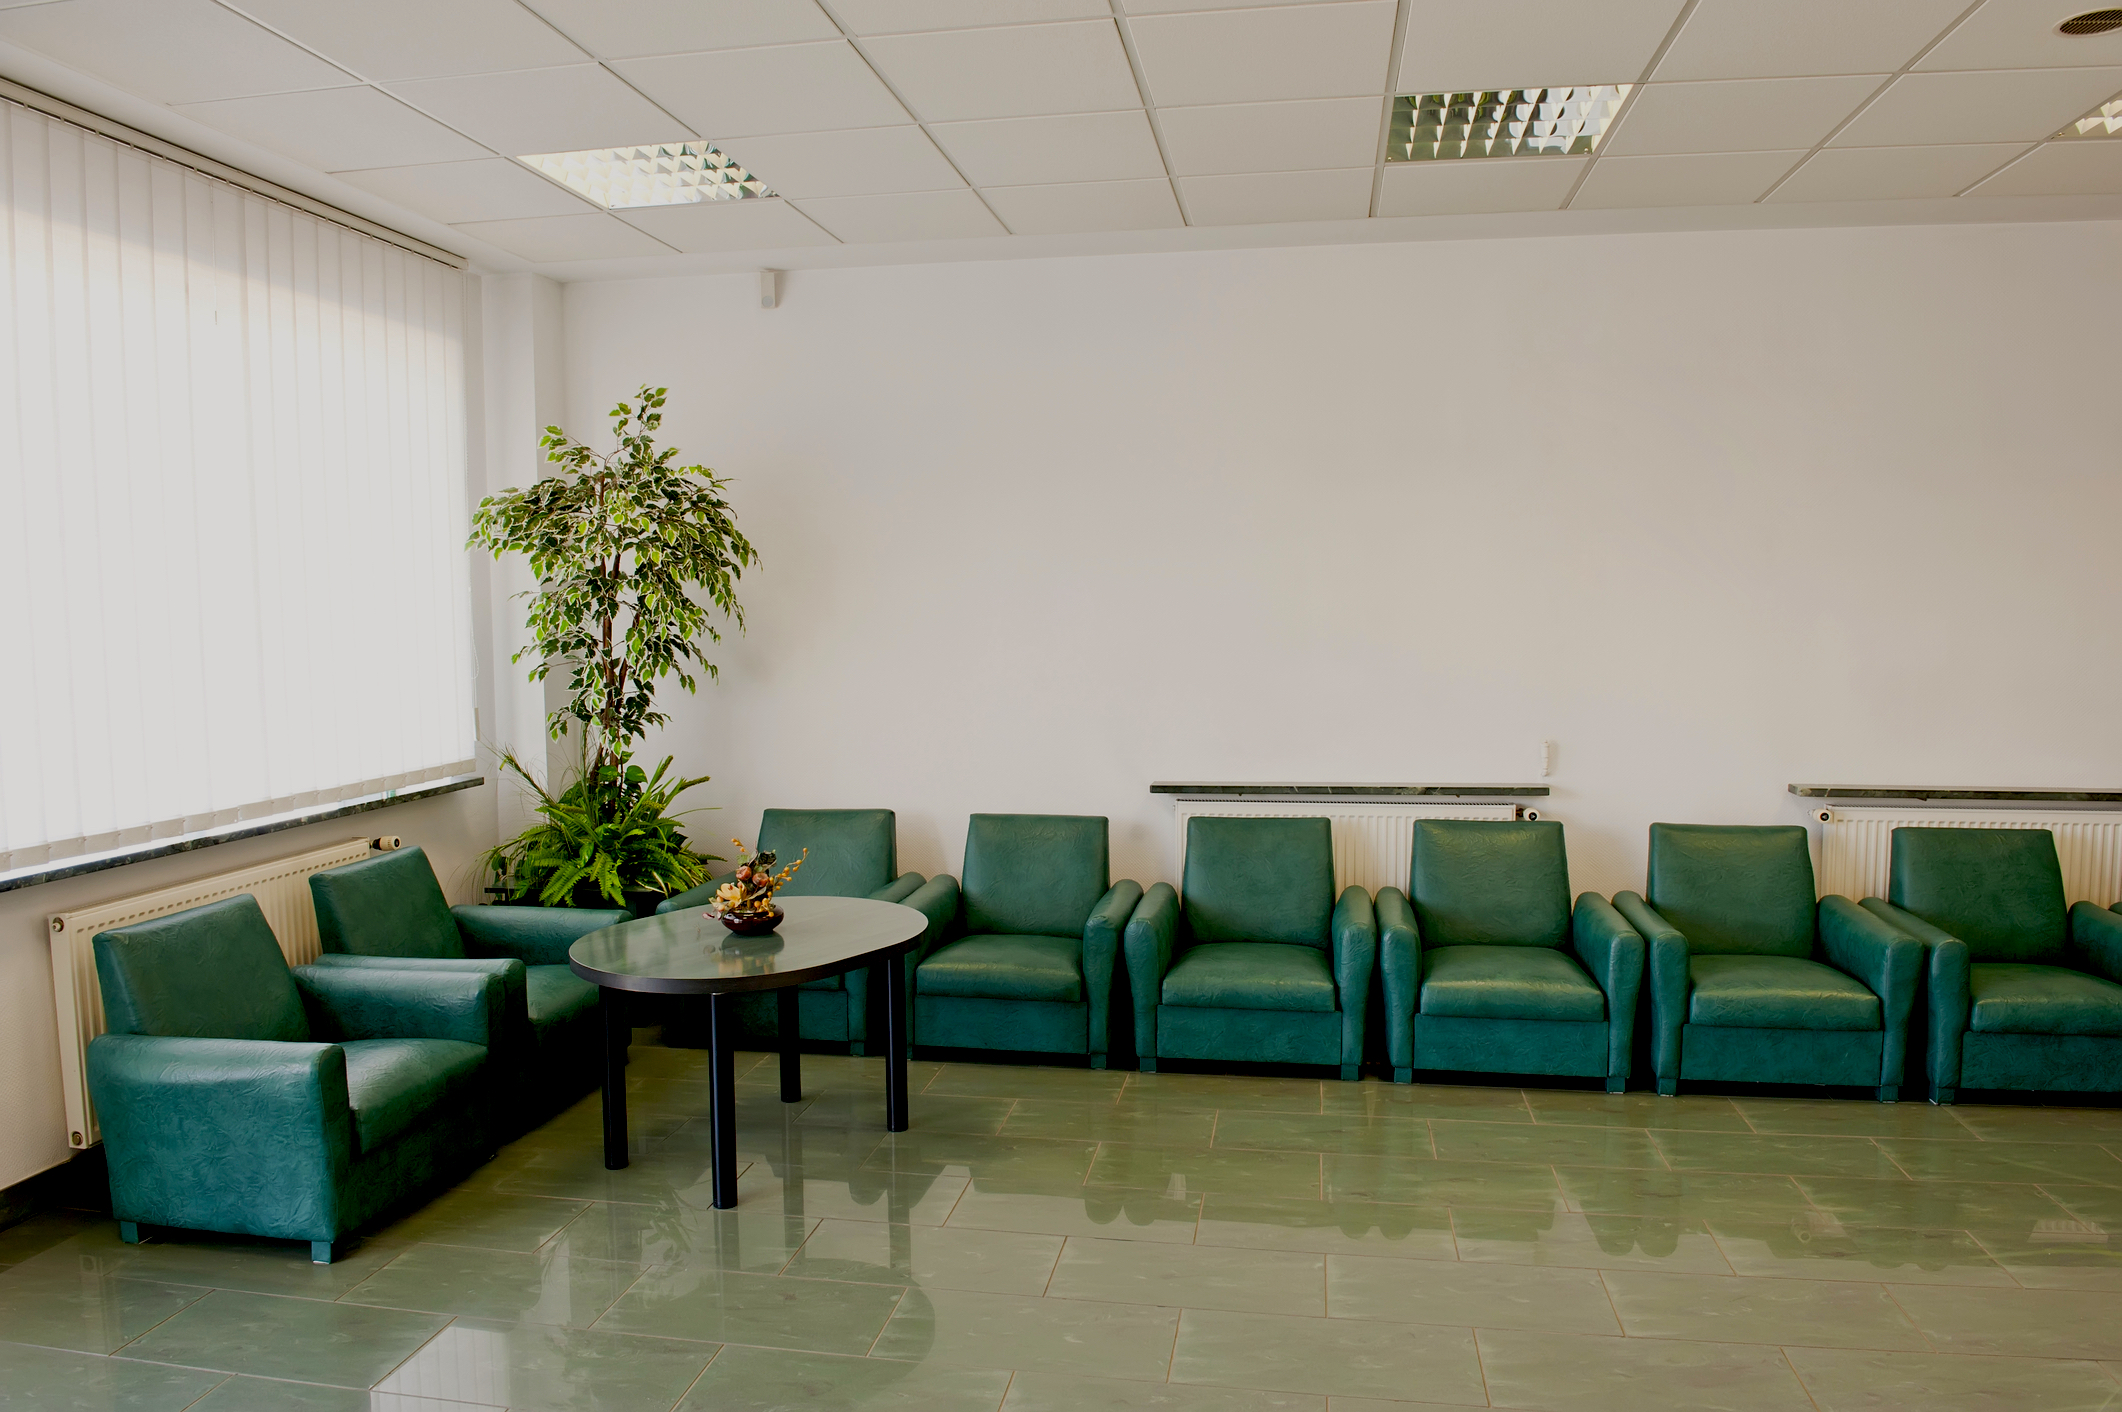 Hospitals and Waiting Rooms